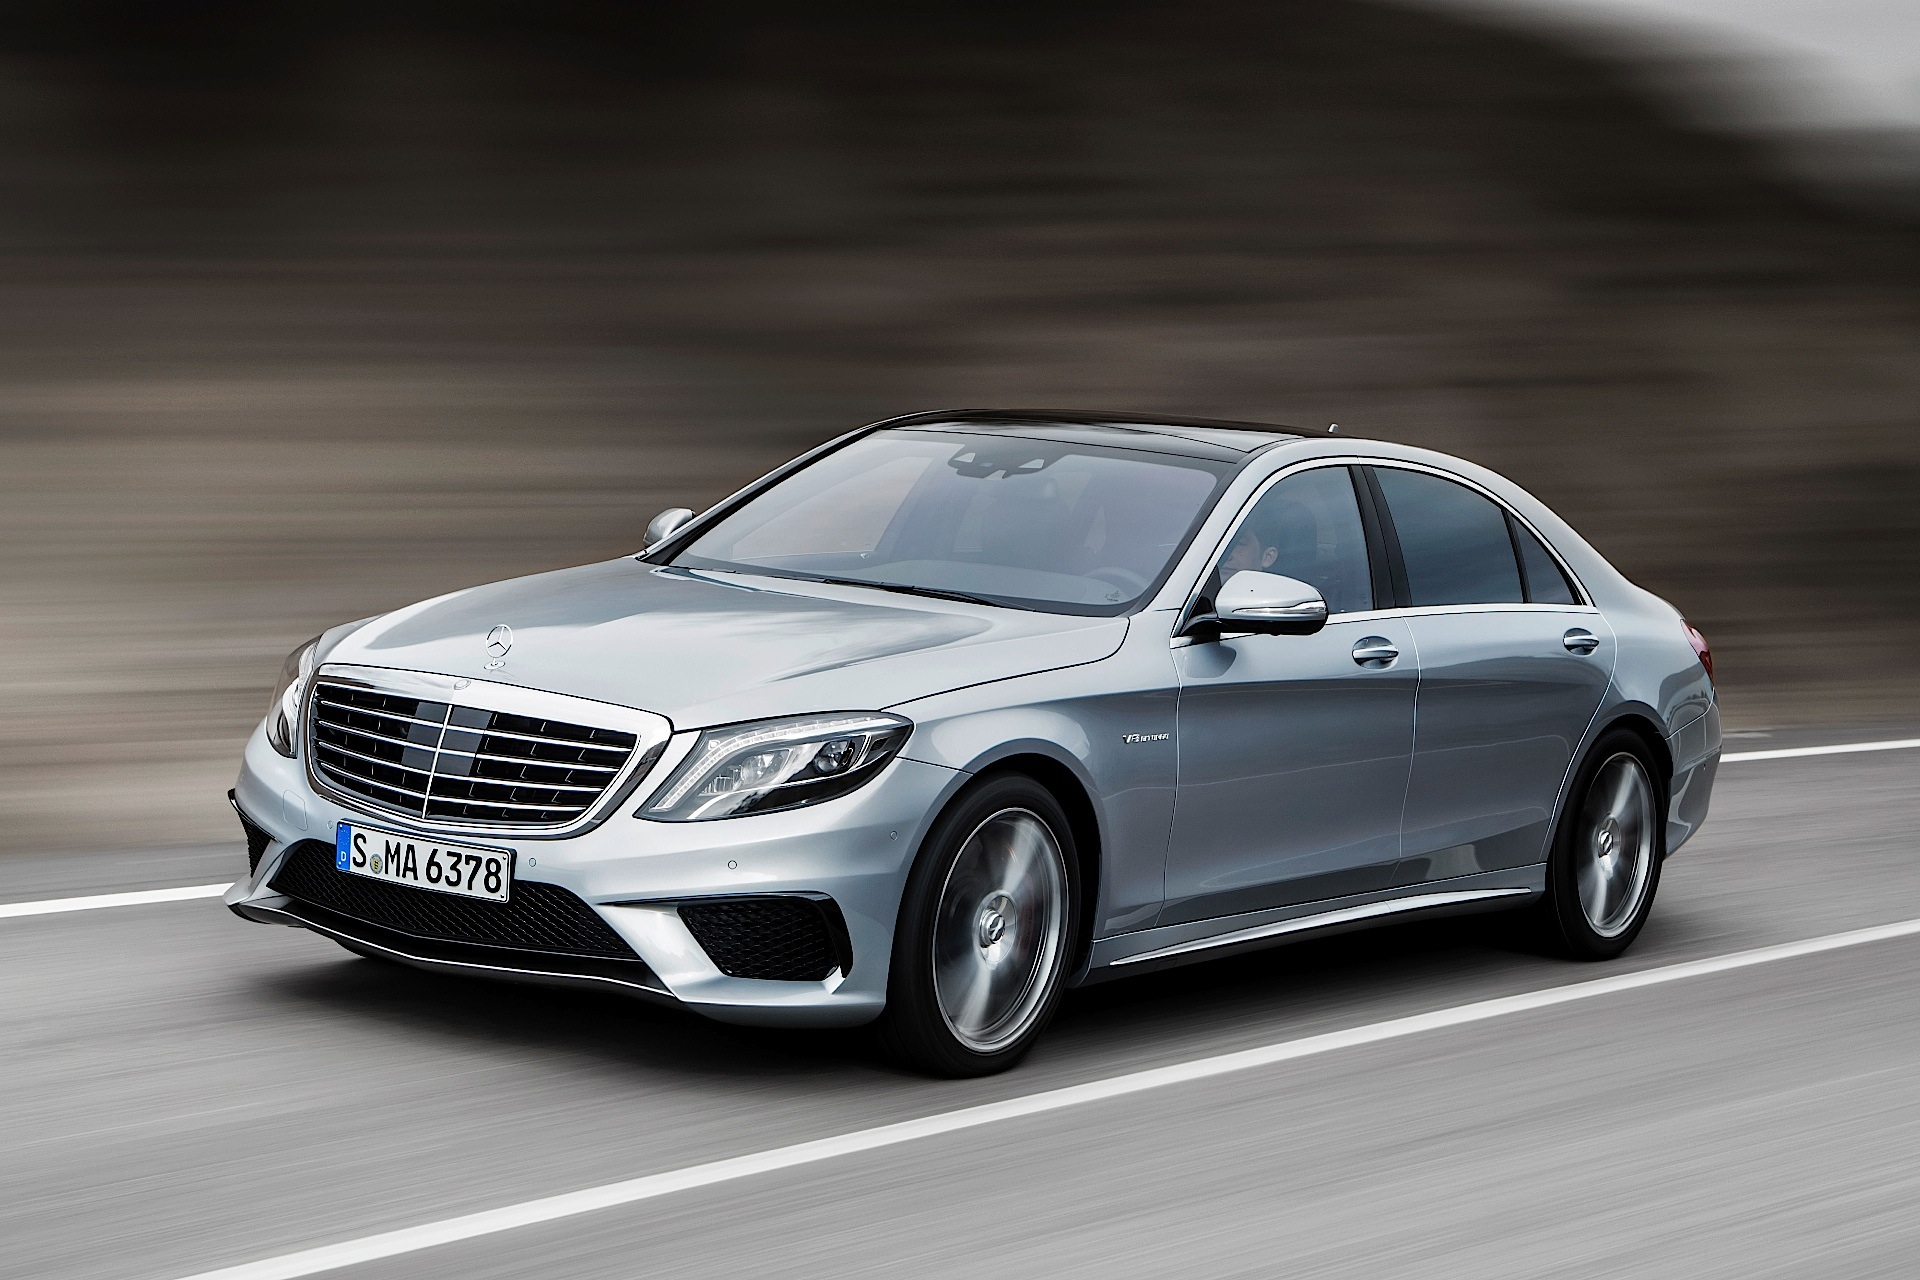 Mercedes benz s 63 amg w222 specs 2013 2014 2015 for Mercedes benz s63 amg 2013